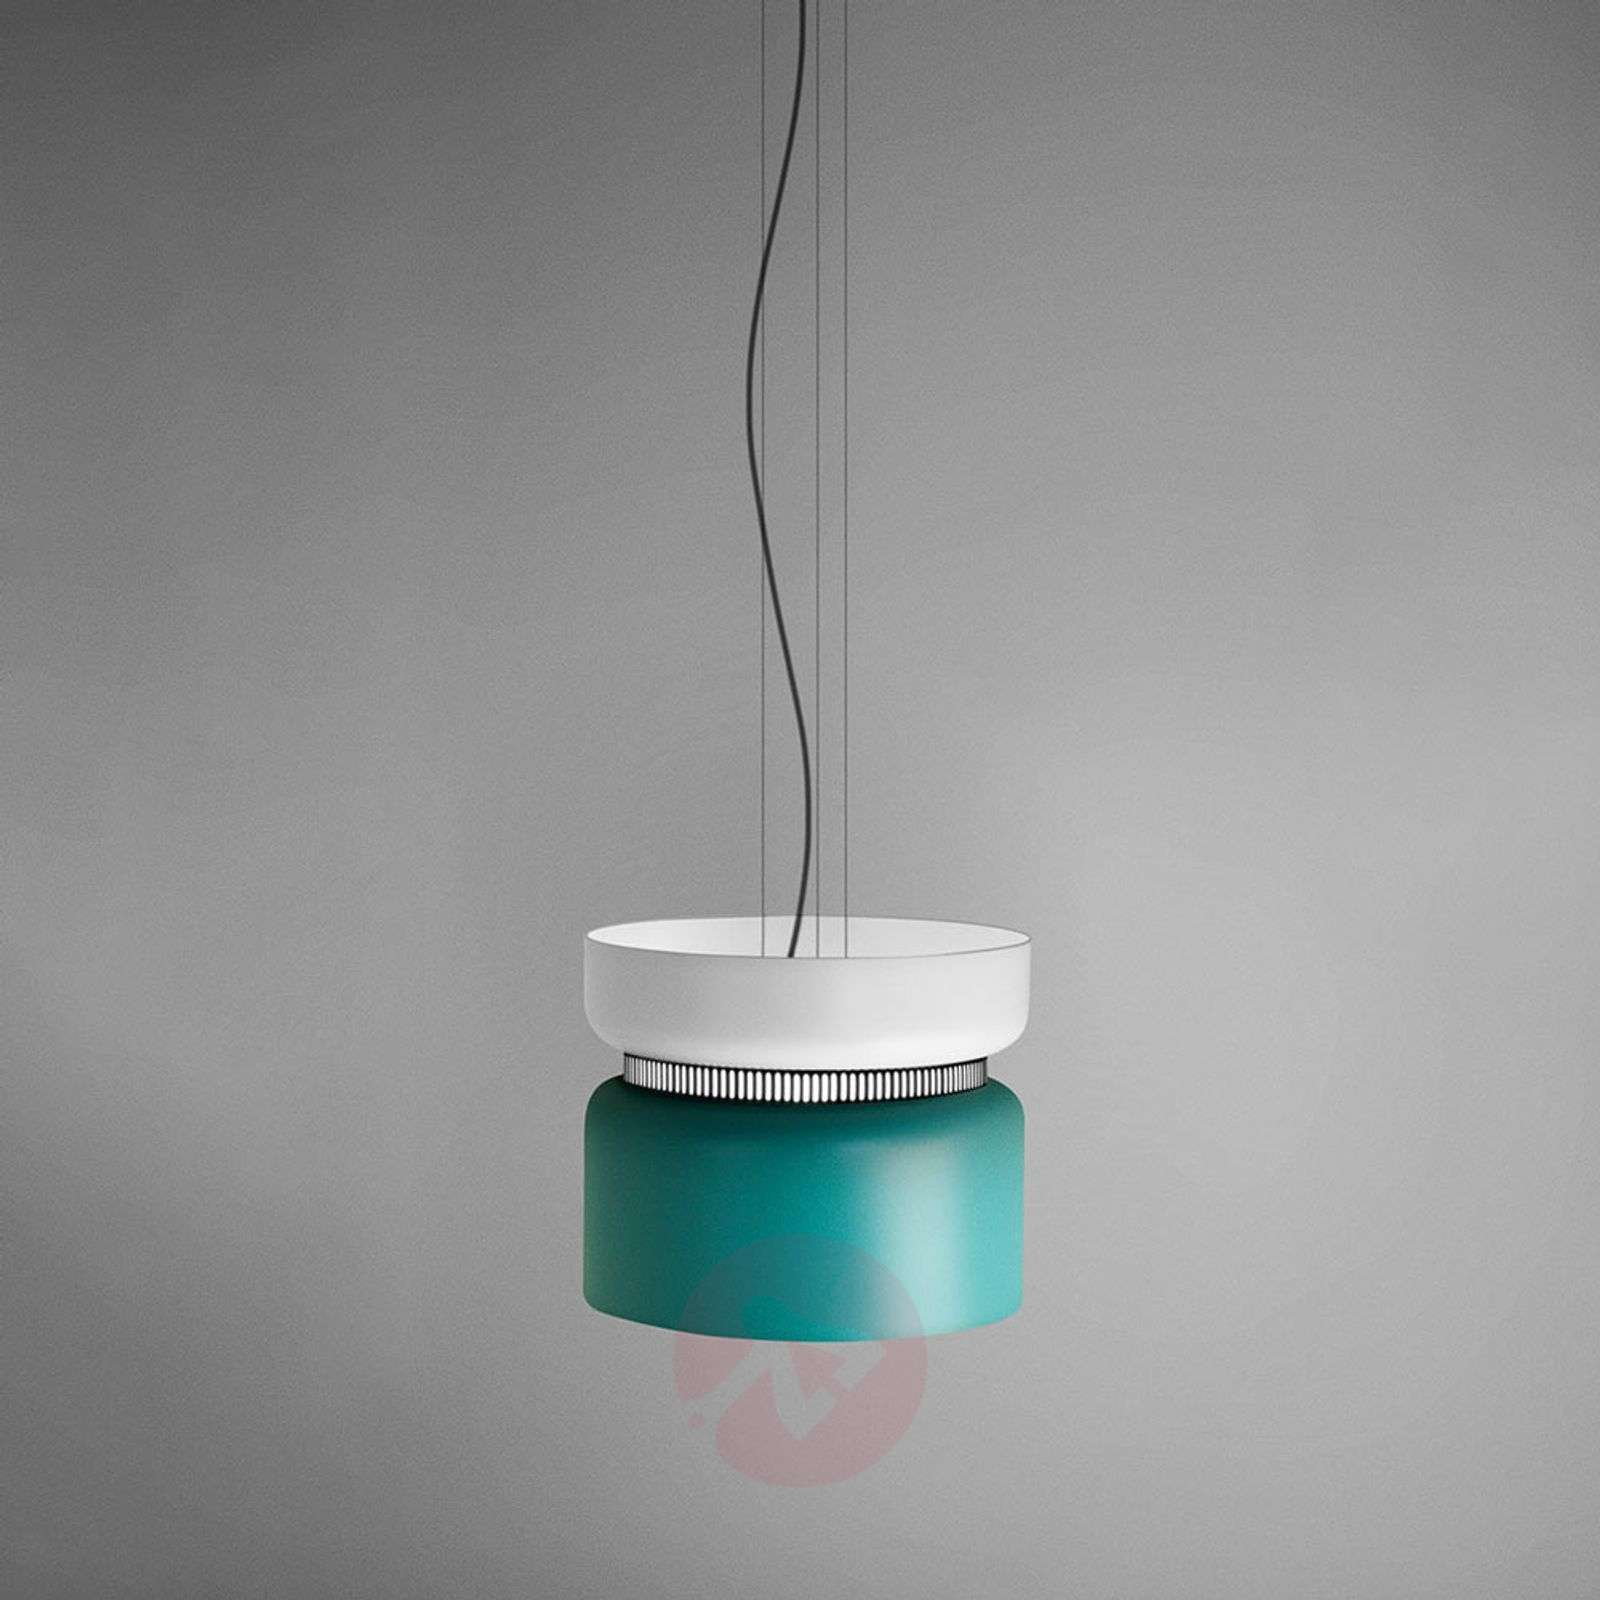 Suspension LED Aspen S blanc-turquoise 40 cm-1514068-01